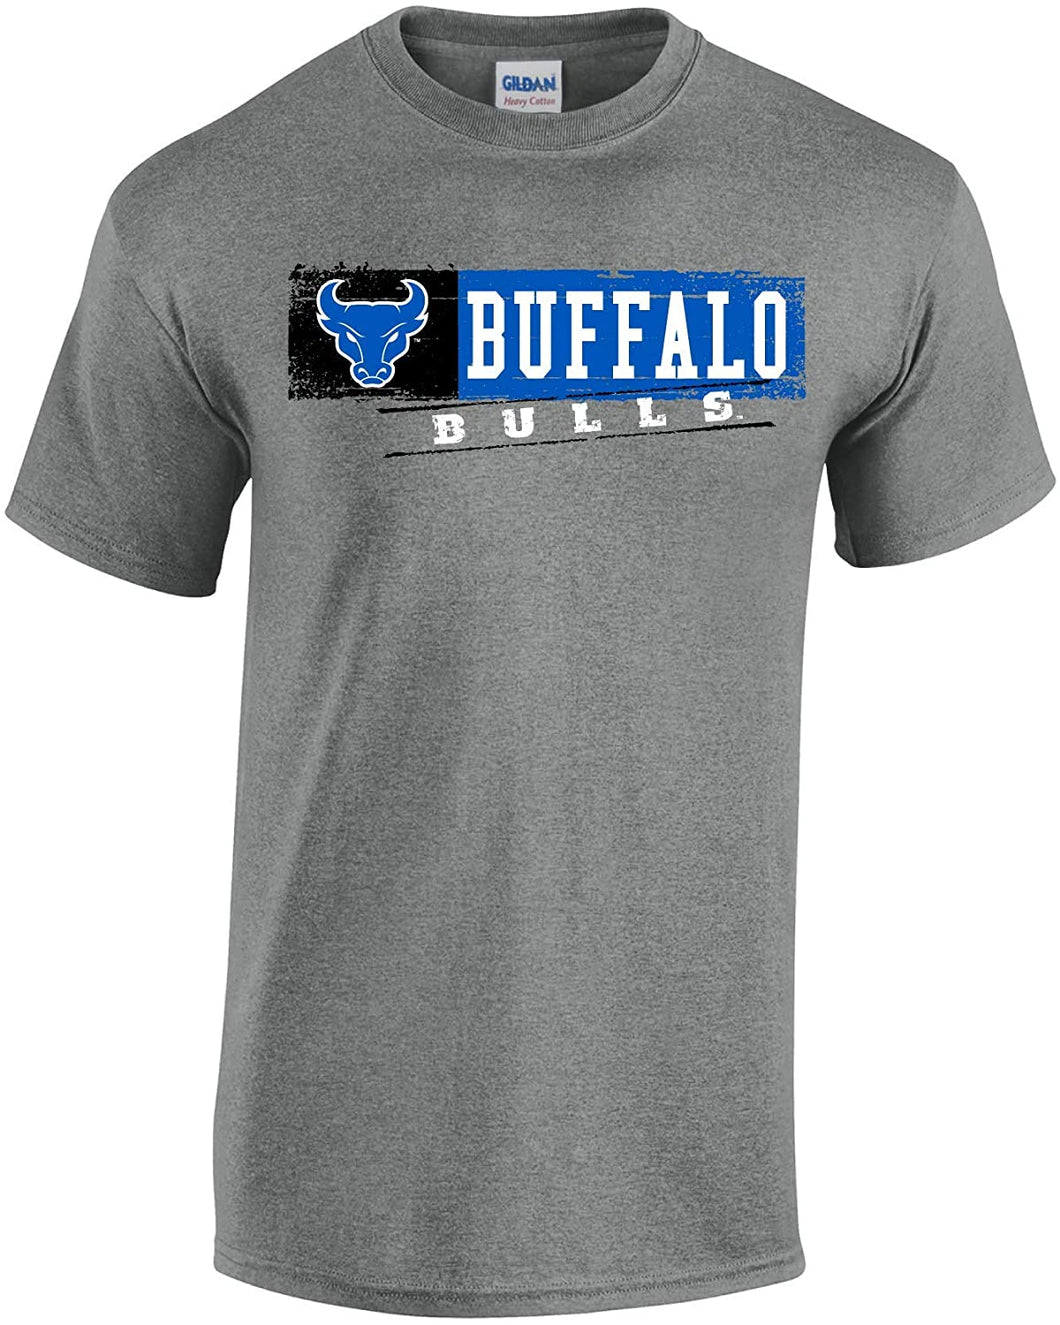 Buffalo Bulls NCAA Sticker Unisex T-Shirt